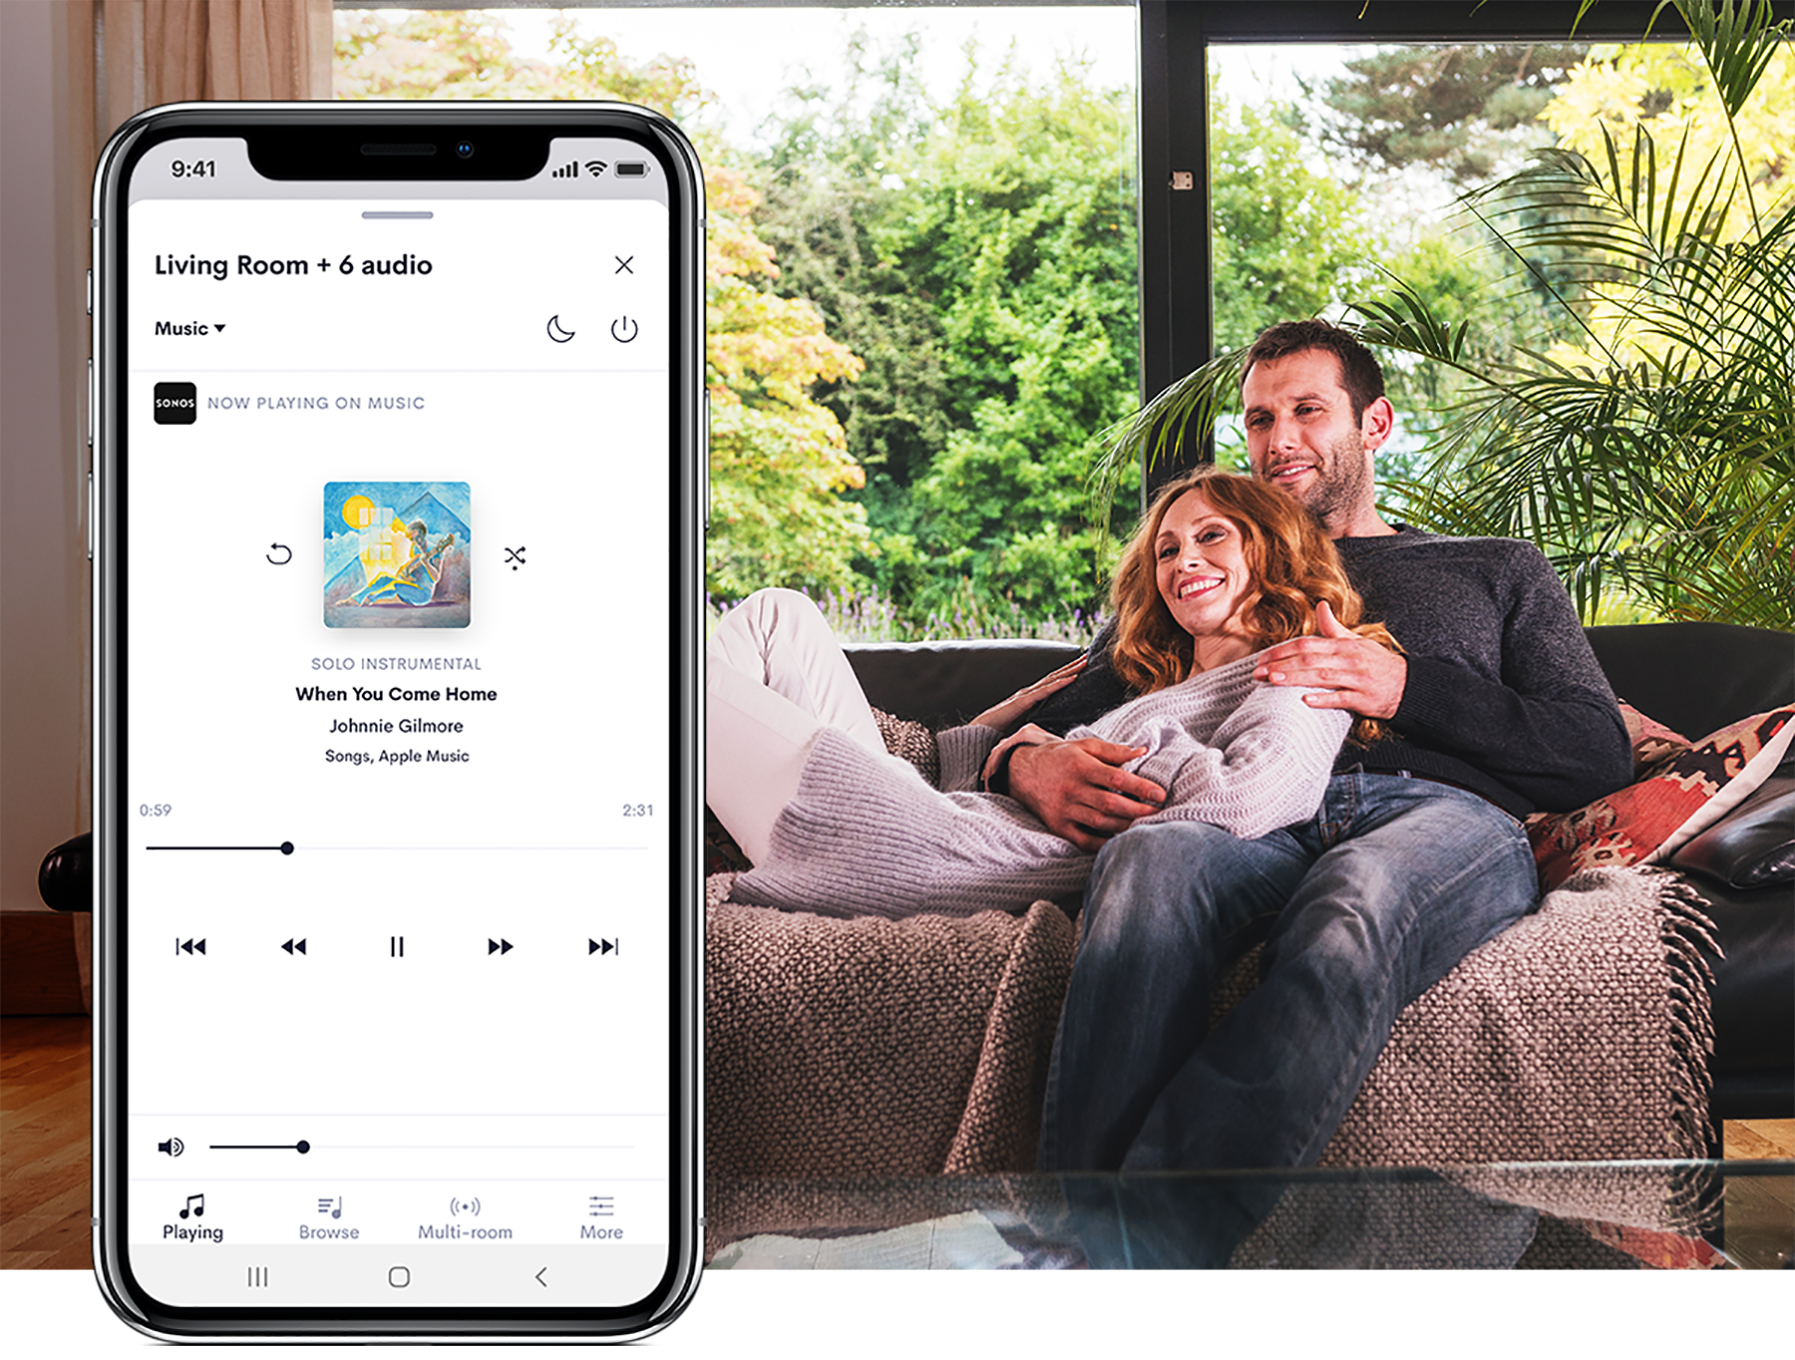 Couple in living room with image of smart phone with audio UI